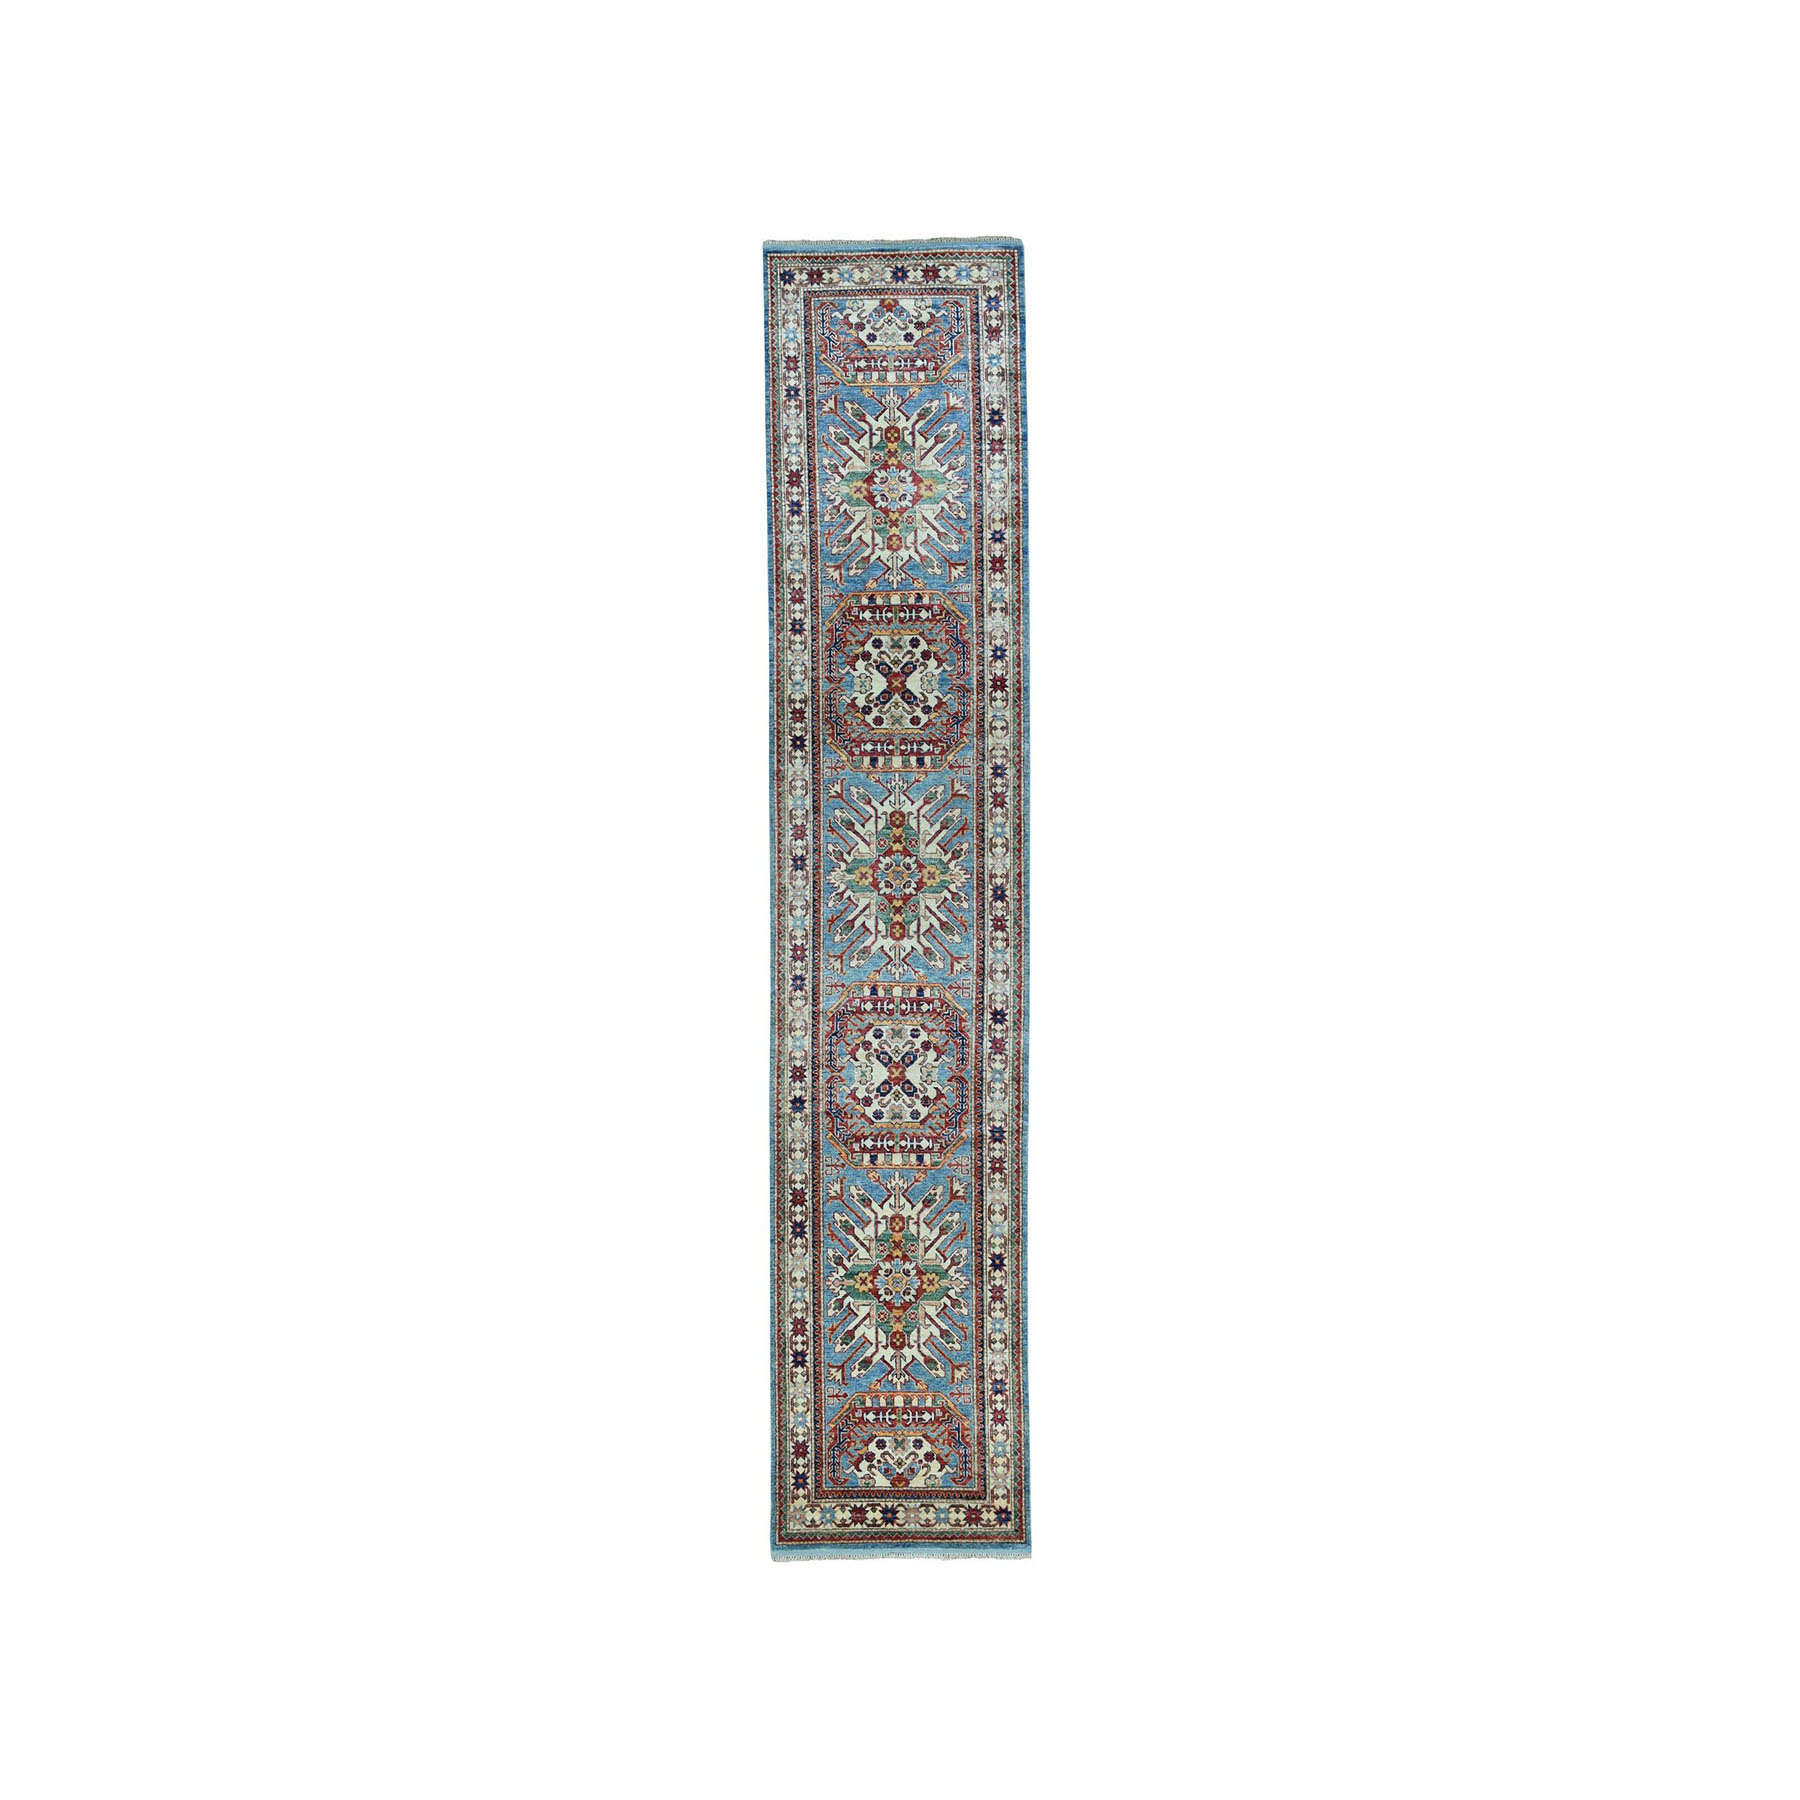 "2'10""X12'5"" Blue Super Kazak Pure Wool Geometric Design Hand-Knotted Runner Oriental Rug moae06d7"